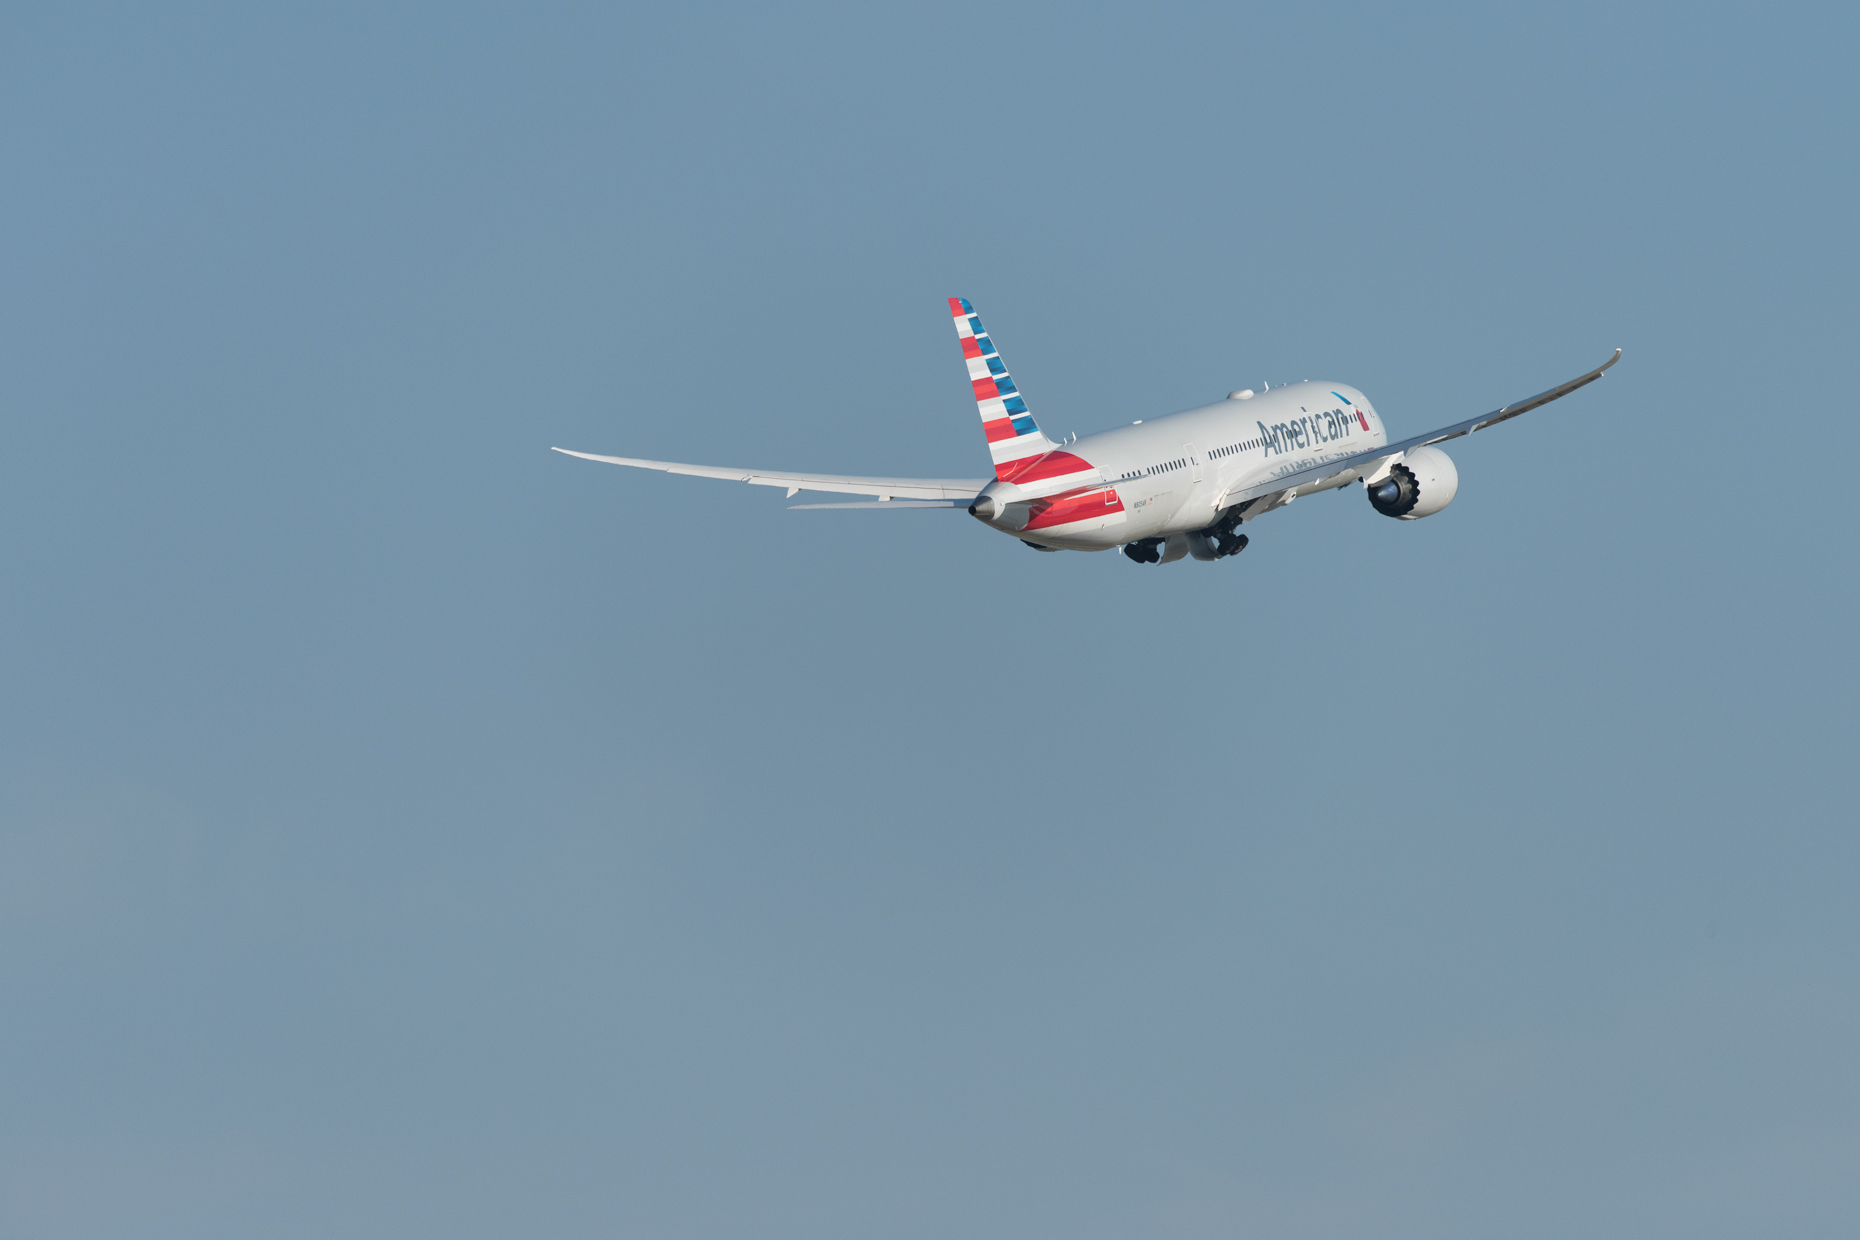 Boeing 787 taking off at DFW Airport by commercial photographer in Dallas Kevin Brown